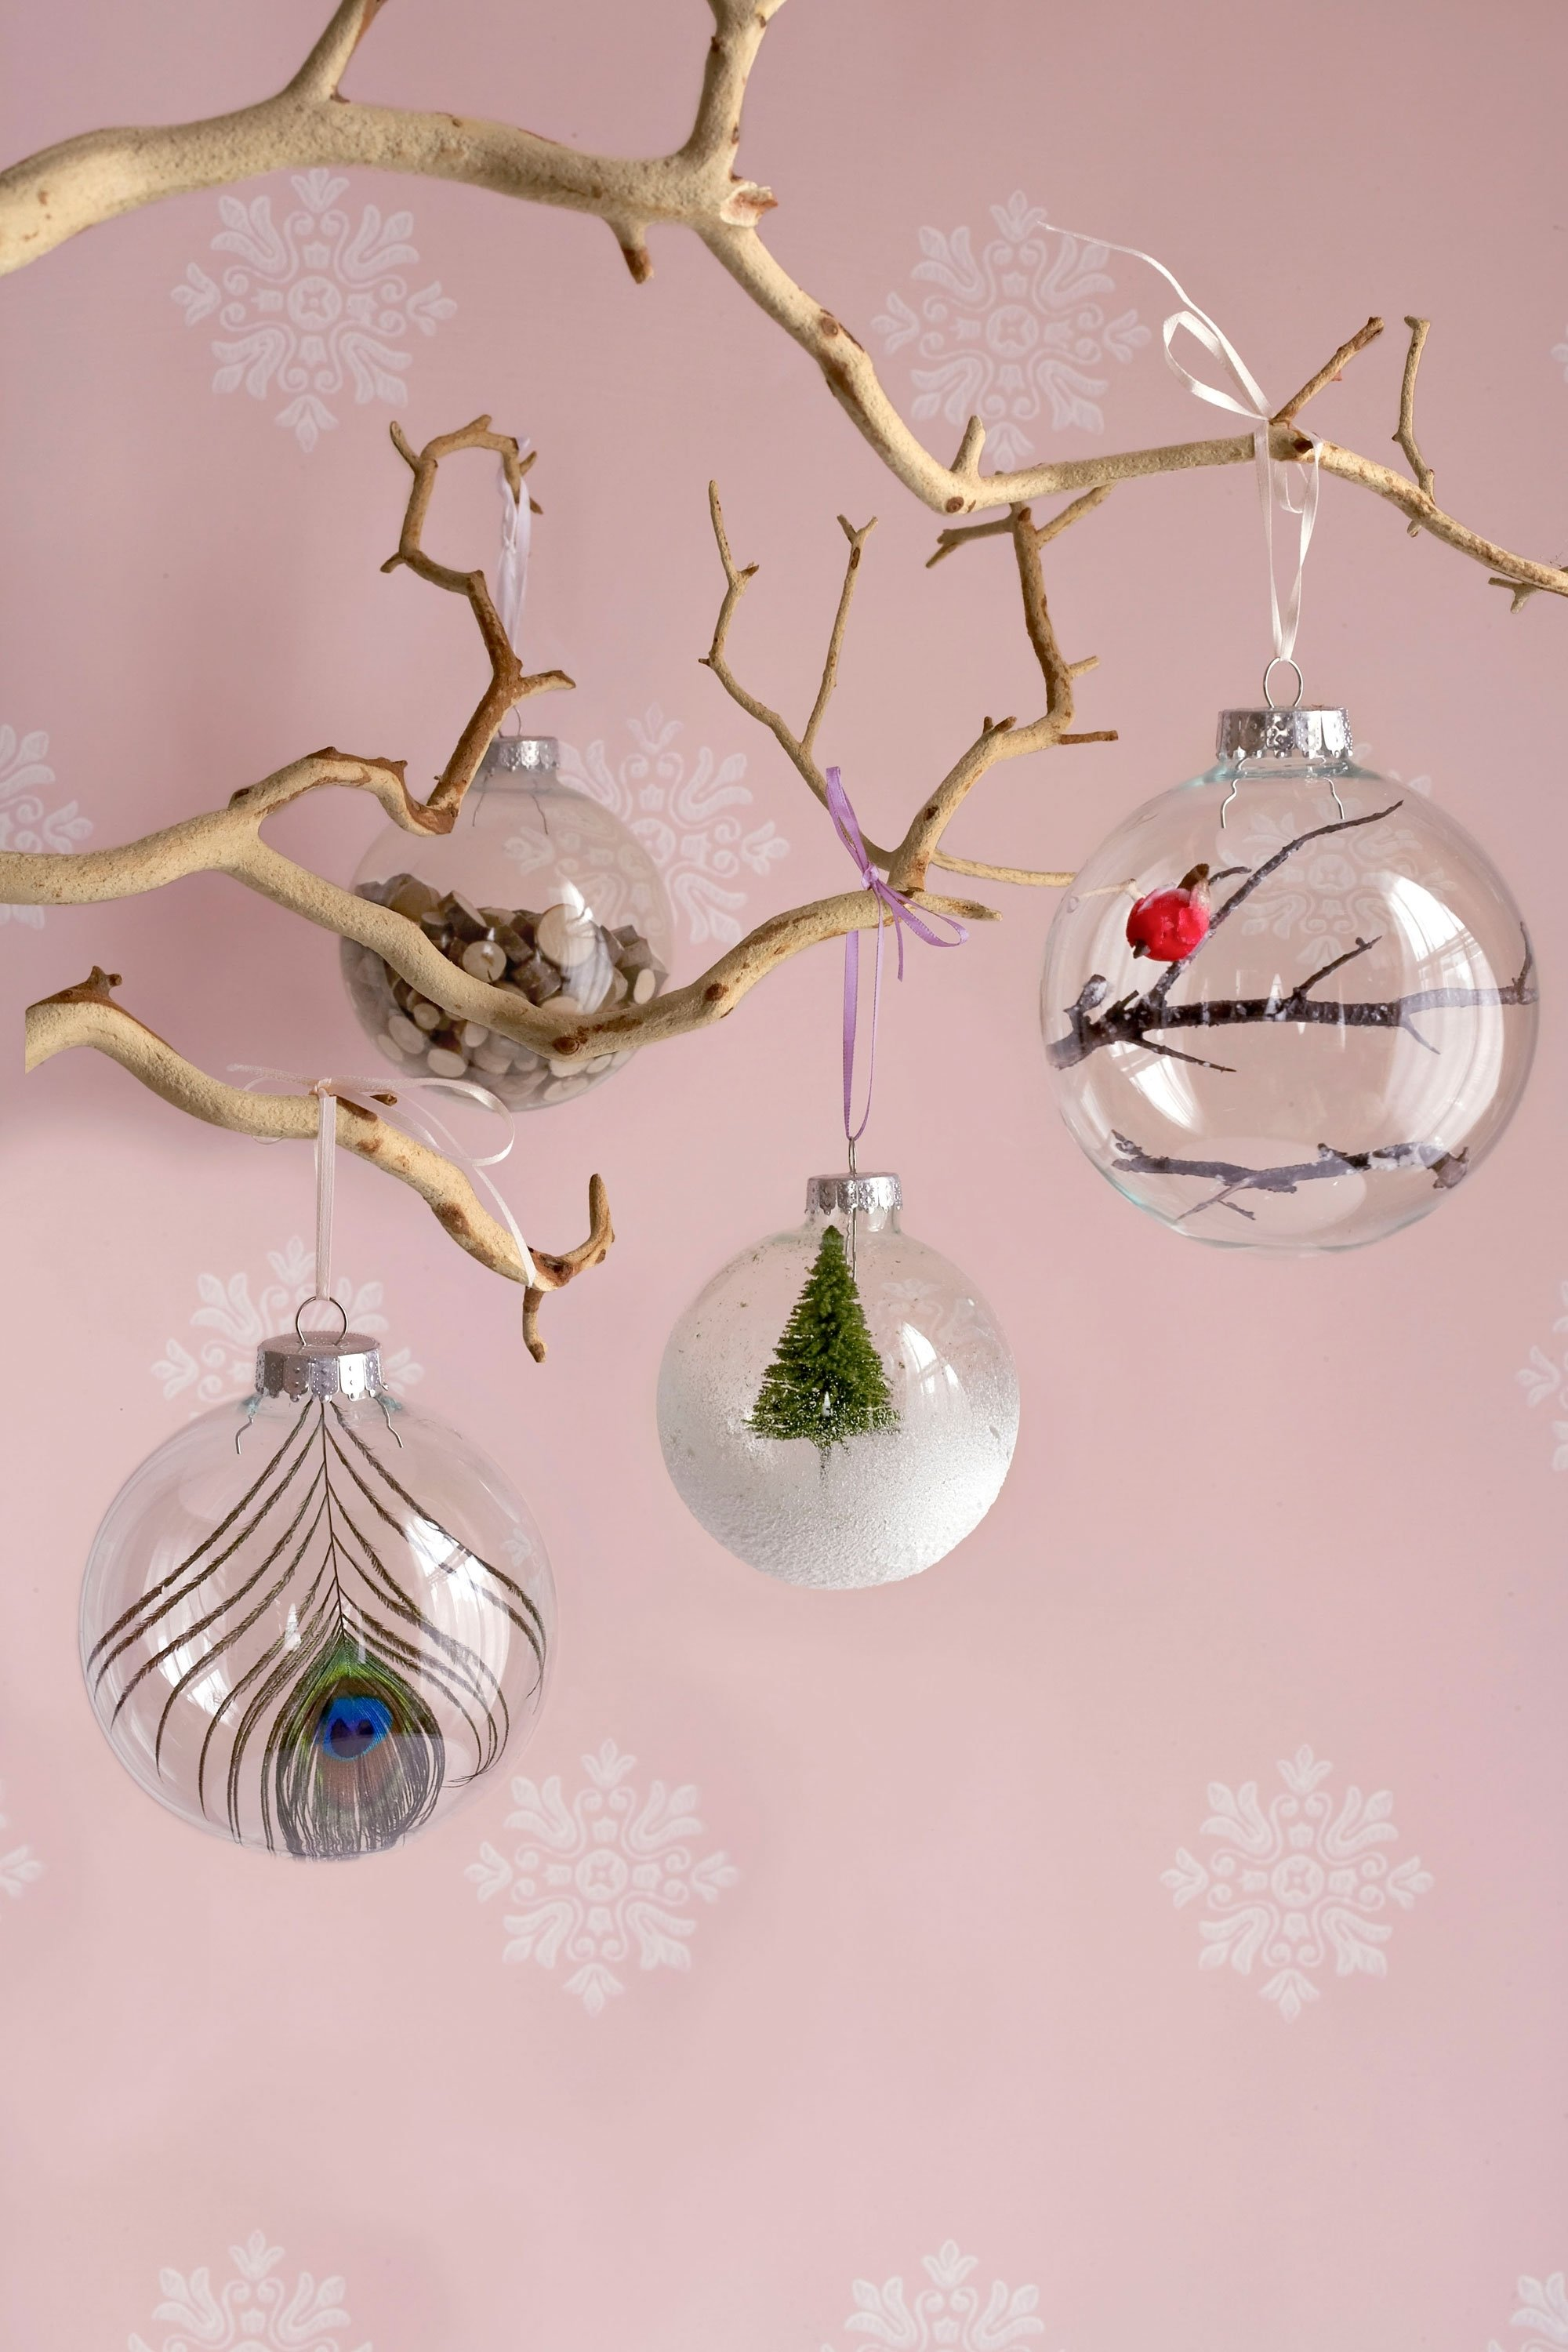 10 Cute Christmas Decorations Ideas To Make 2019